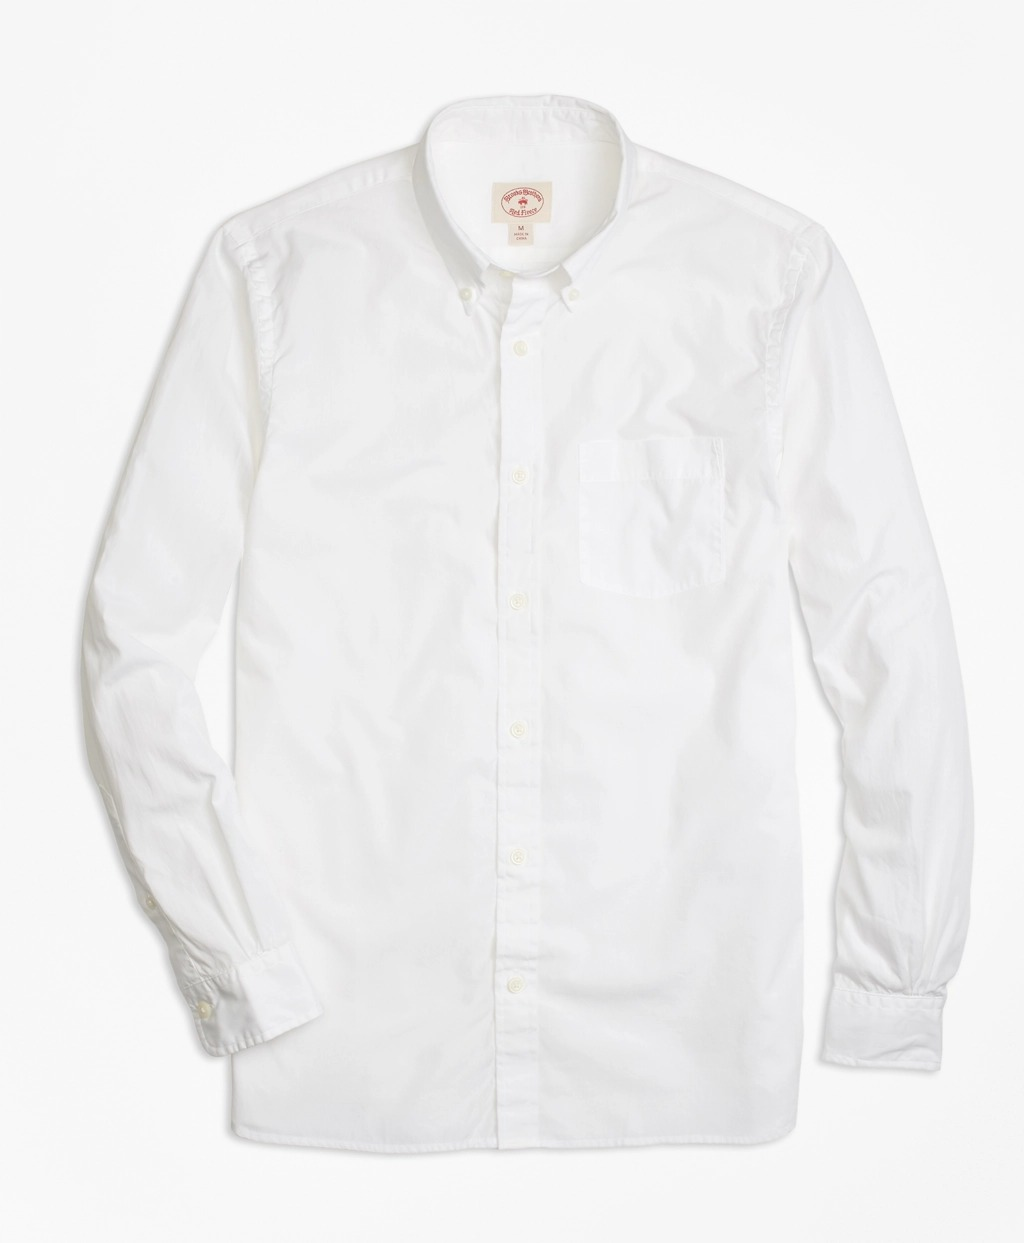 Brooks Brothers white button-down shirt that can be monogrammed